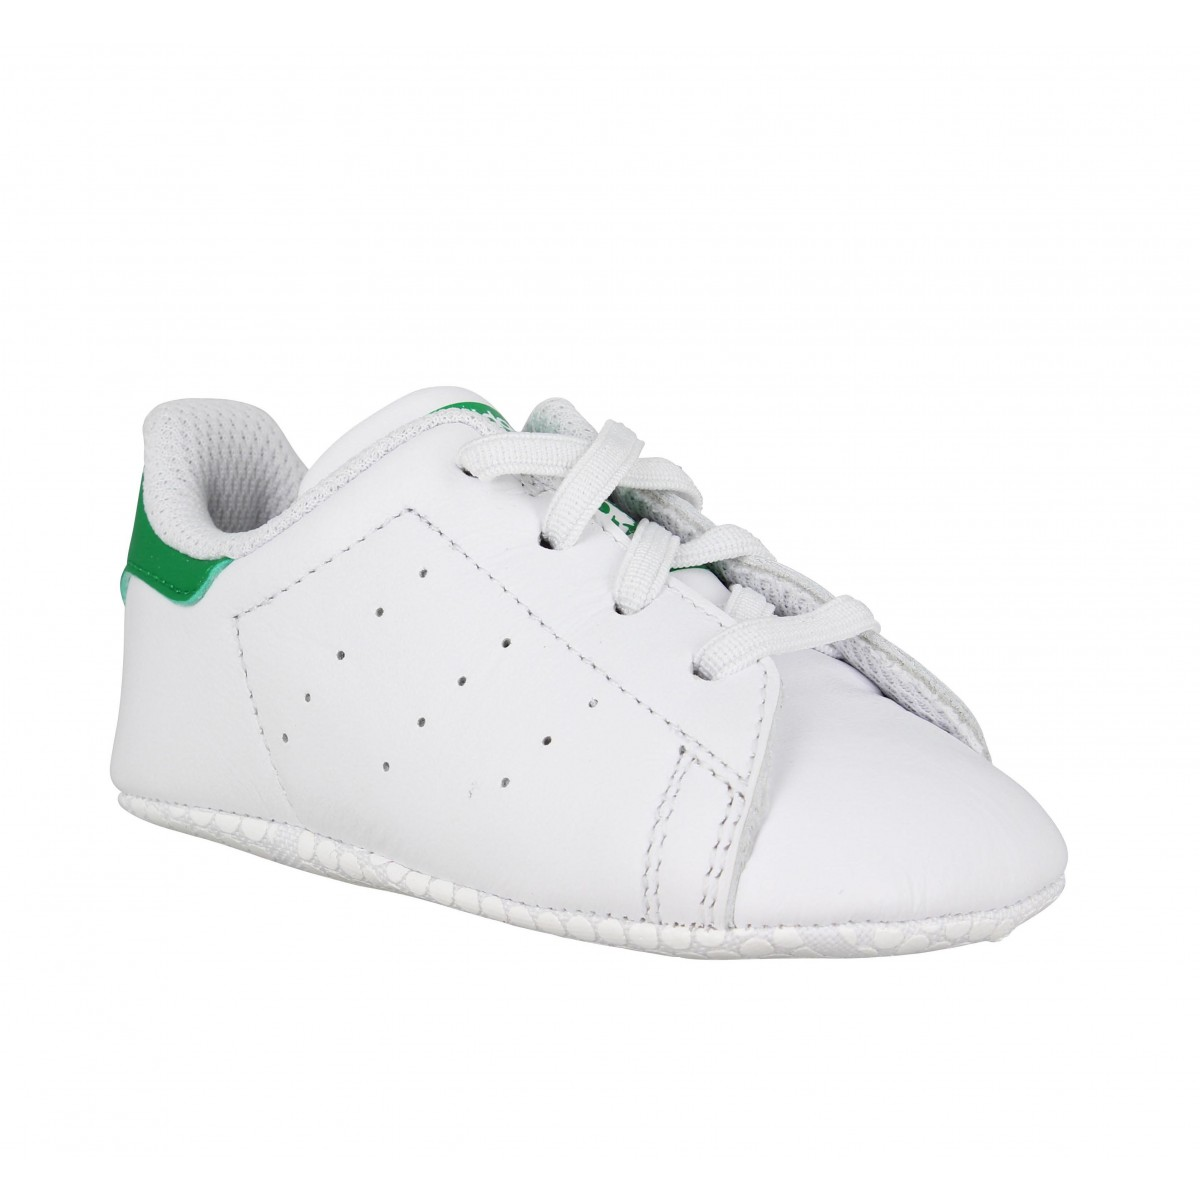 grossiste 88329 a1919 ADIDAS Stan Smith Bebe cuir Enfant Blanc + Vert